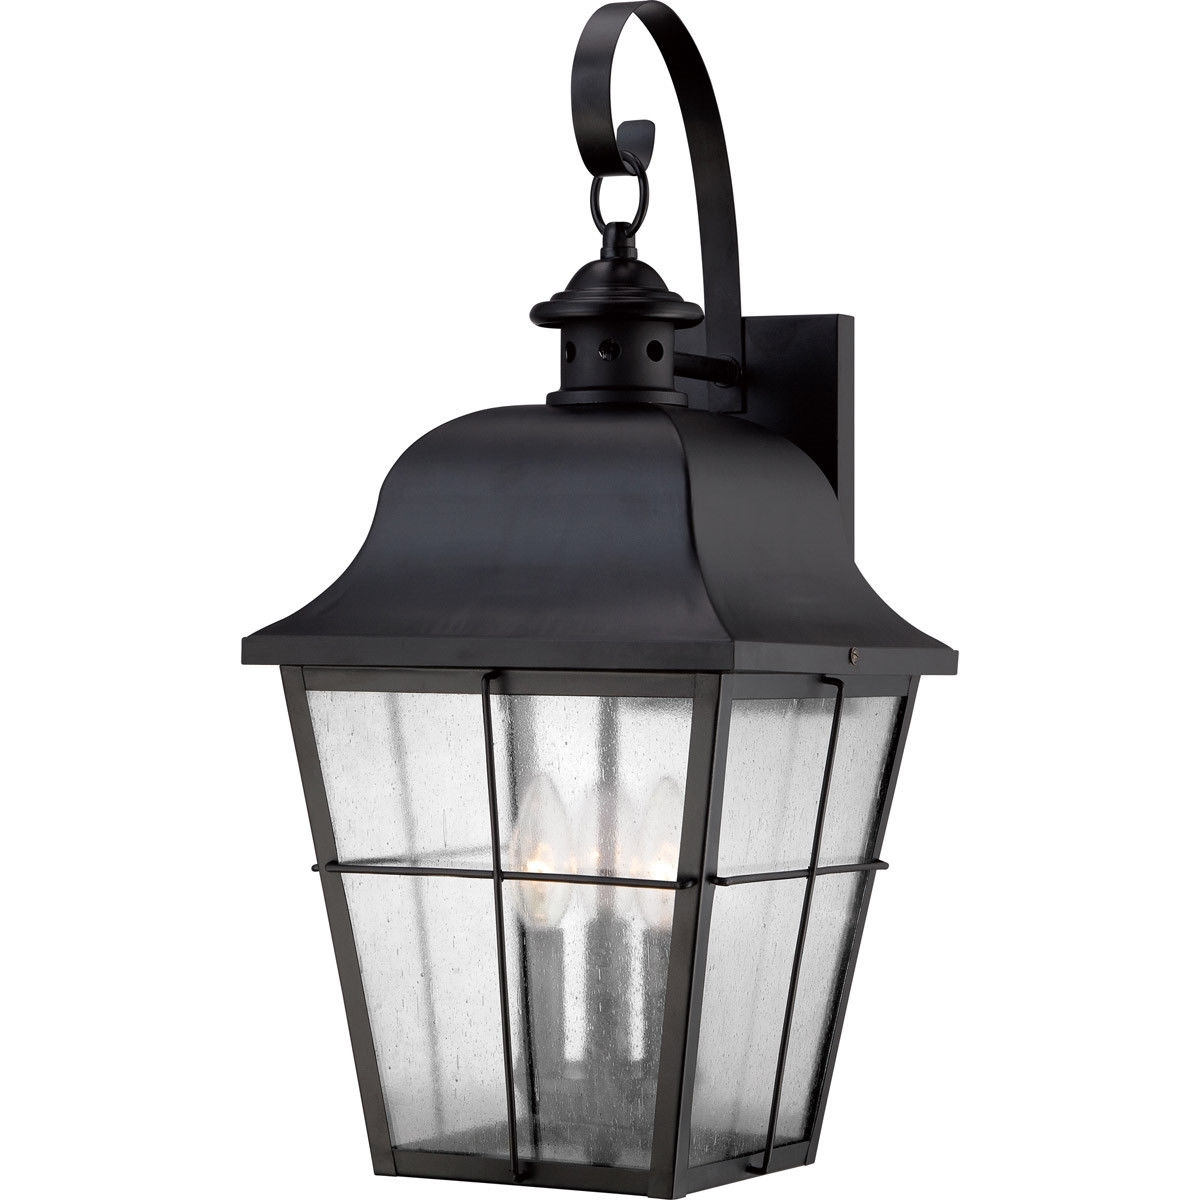 2018 Quoizel Mhe8410k Millhouse 3 Light 22 Inch Mystic Black Outdoor Wall Within Quoizel Outdoor Lanterns (View 5 of 20)